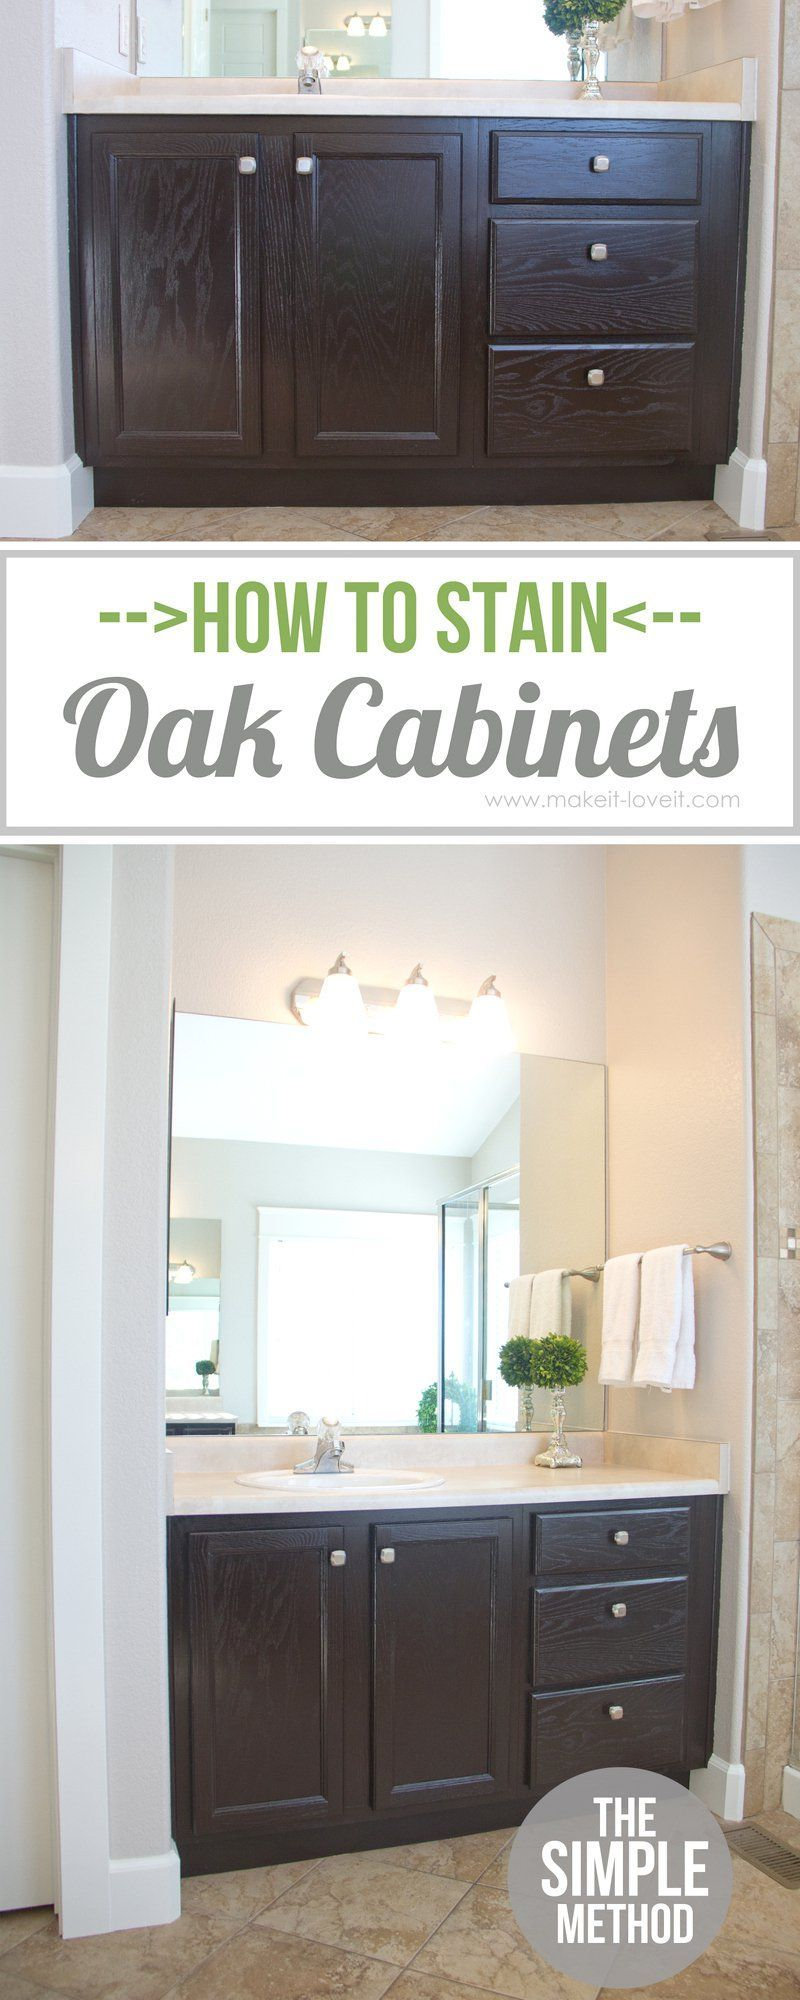 how to stain oak cabinetsthe simple method (no sanding